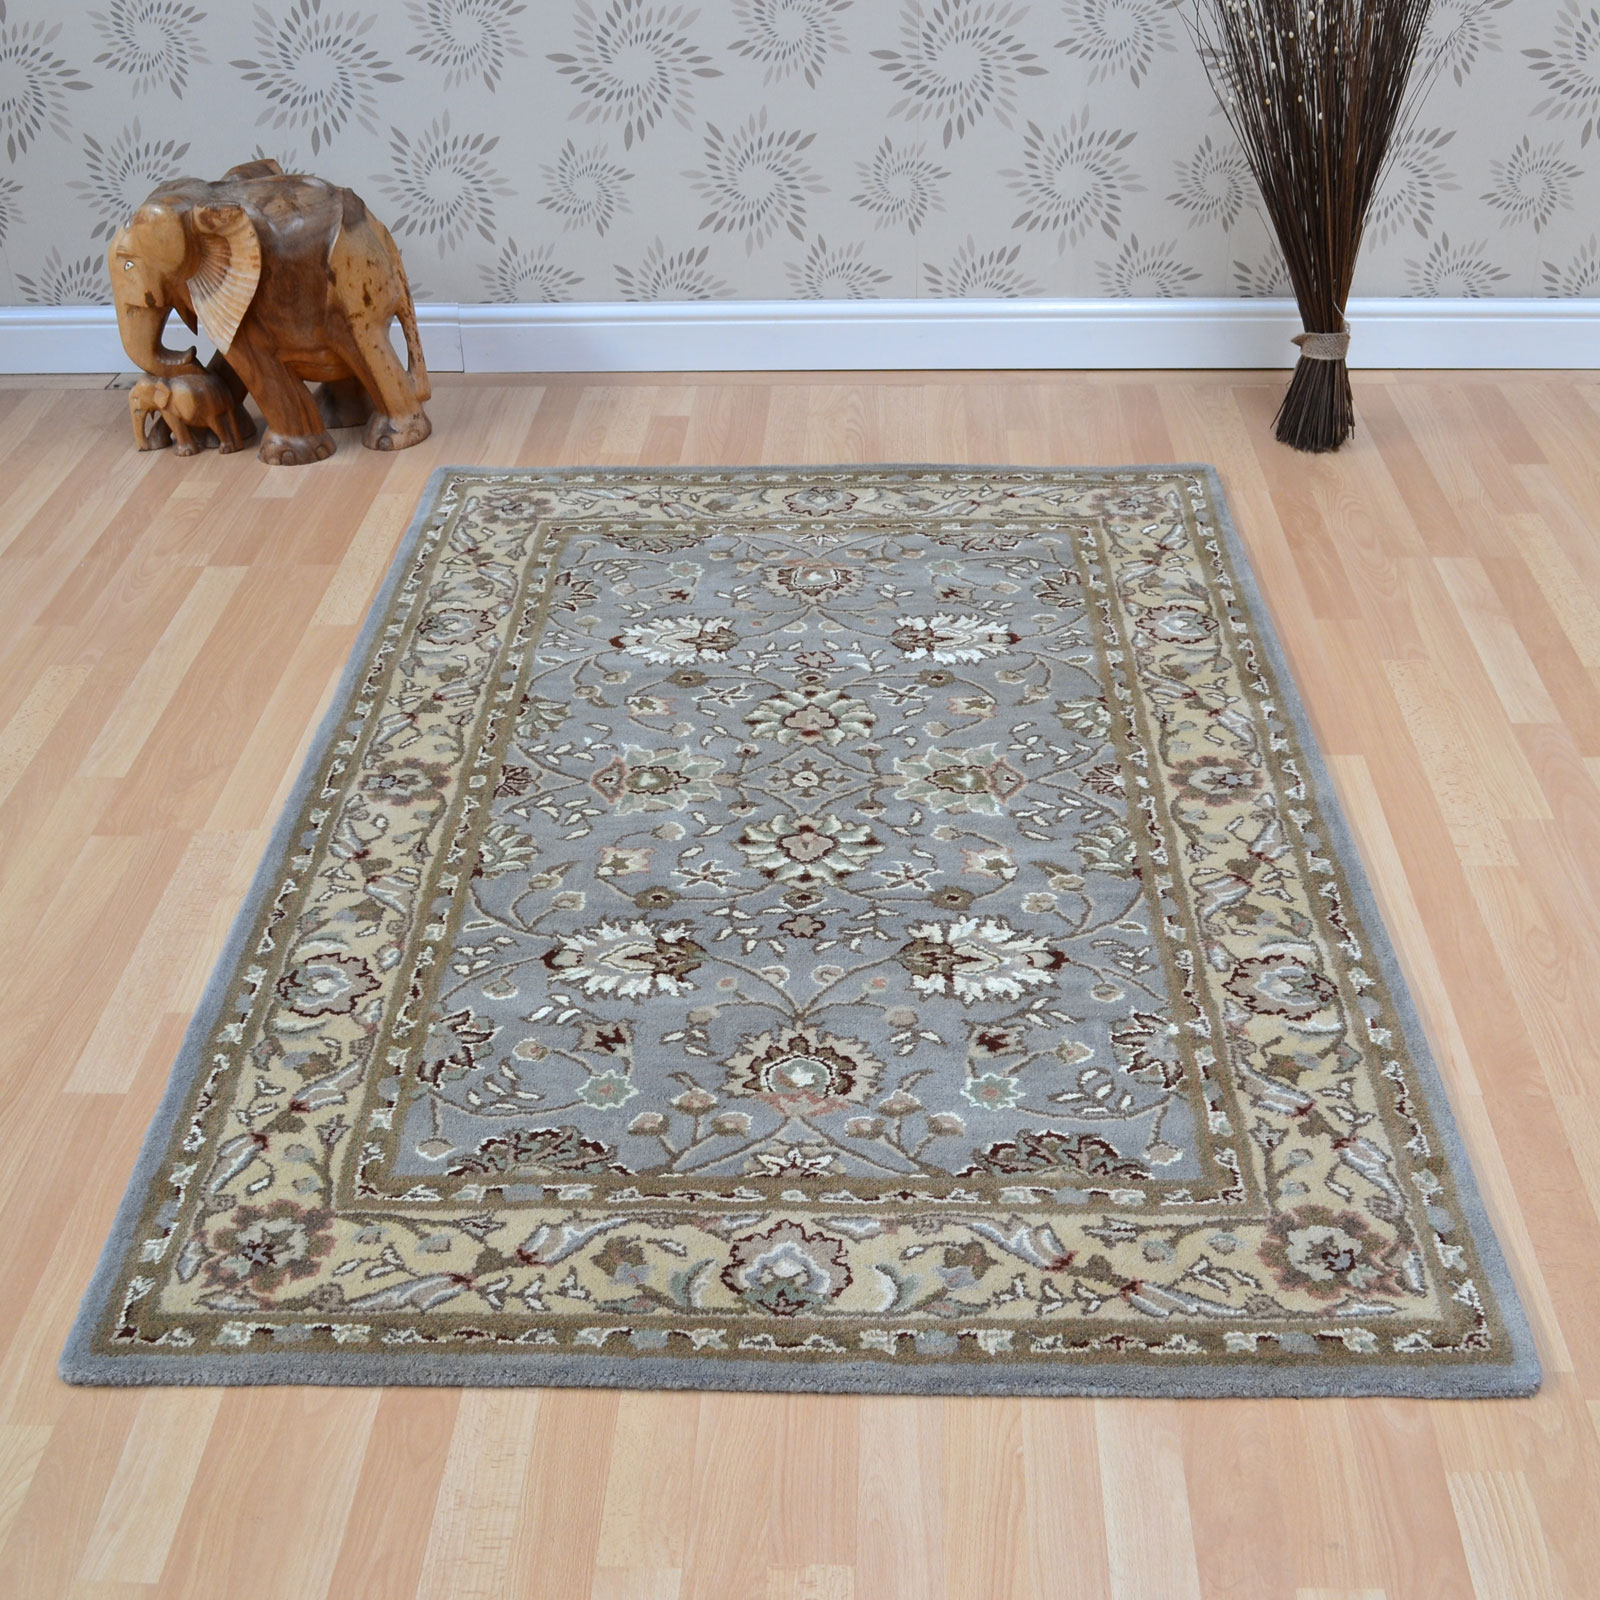 Tabriz Wool Rugs in Blue Beige